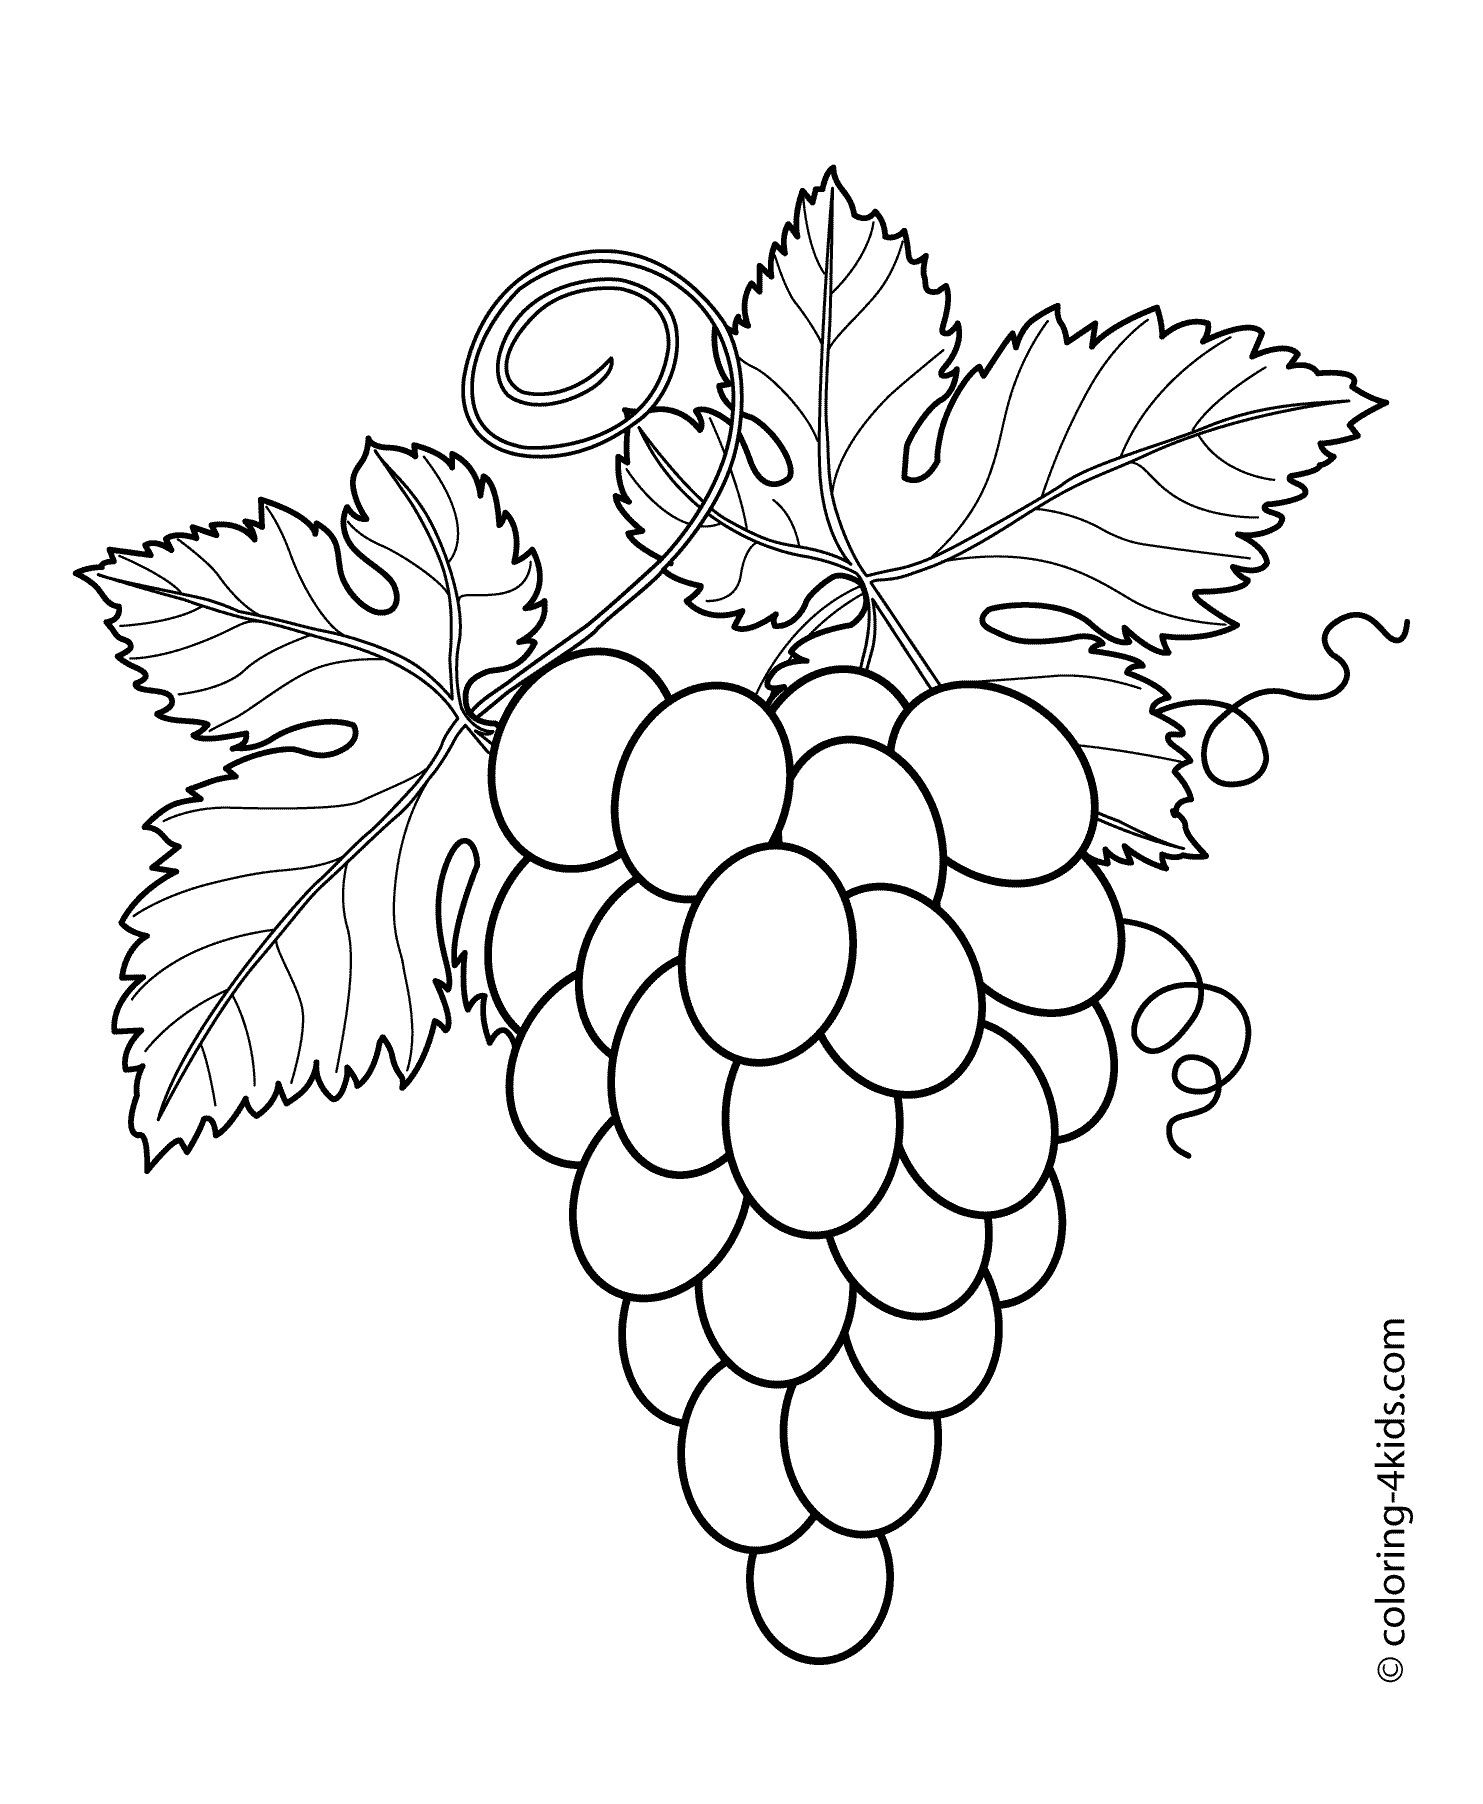 10 Images Of Pile Of Leaves Coloring Pages Coloring Pages In 2020 Fruit Coloring Pages Leaf Coloring Page Vegetable Coloring Pages